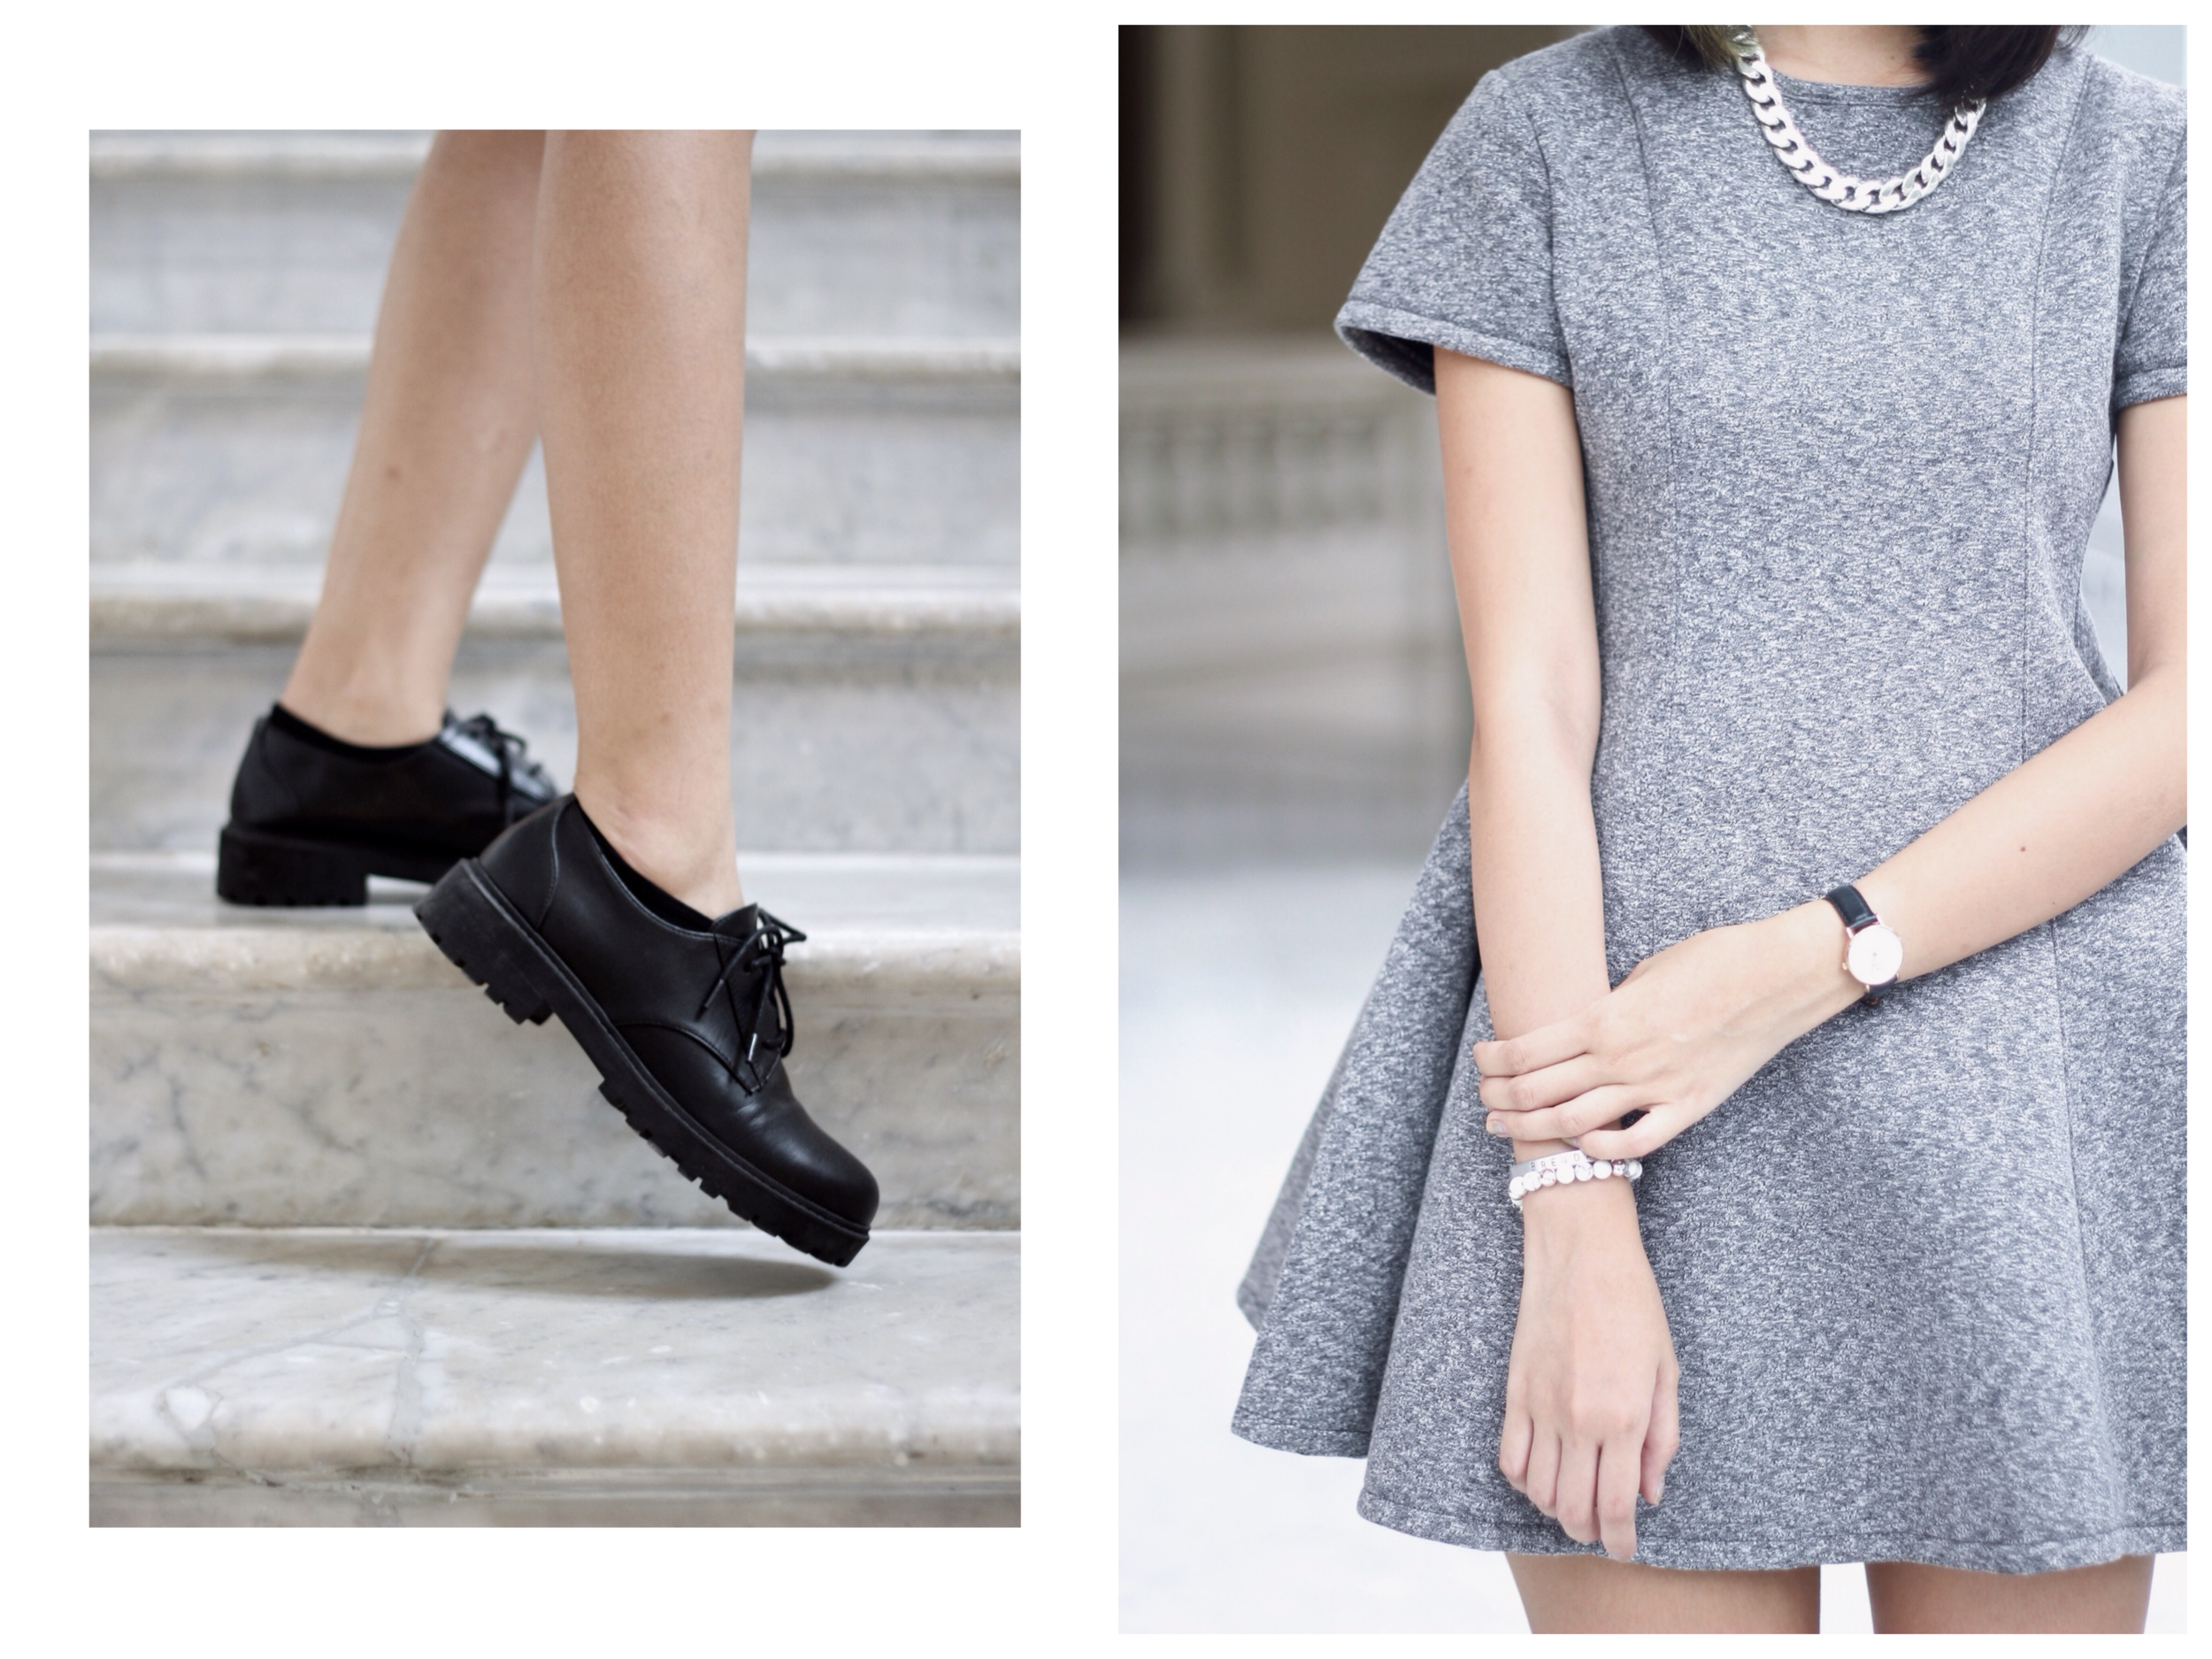 On me: Dress from    Tracyeinny  ,  necklace and shoes  from H&M,  watch from  Daniel Wellington  .